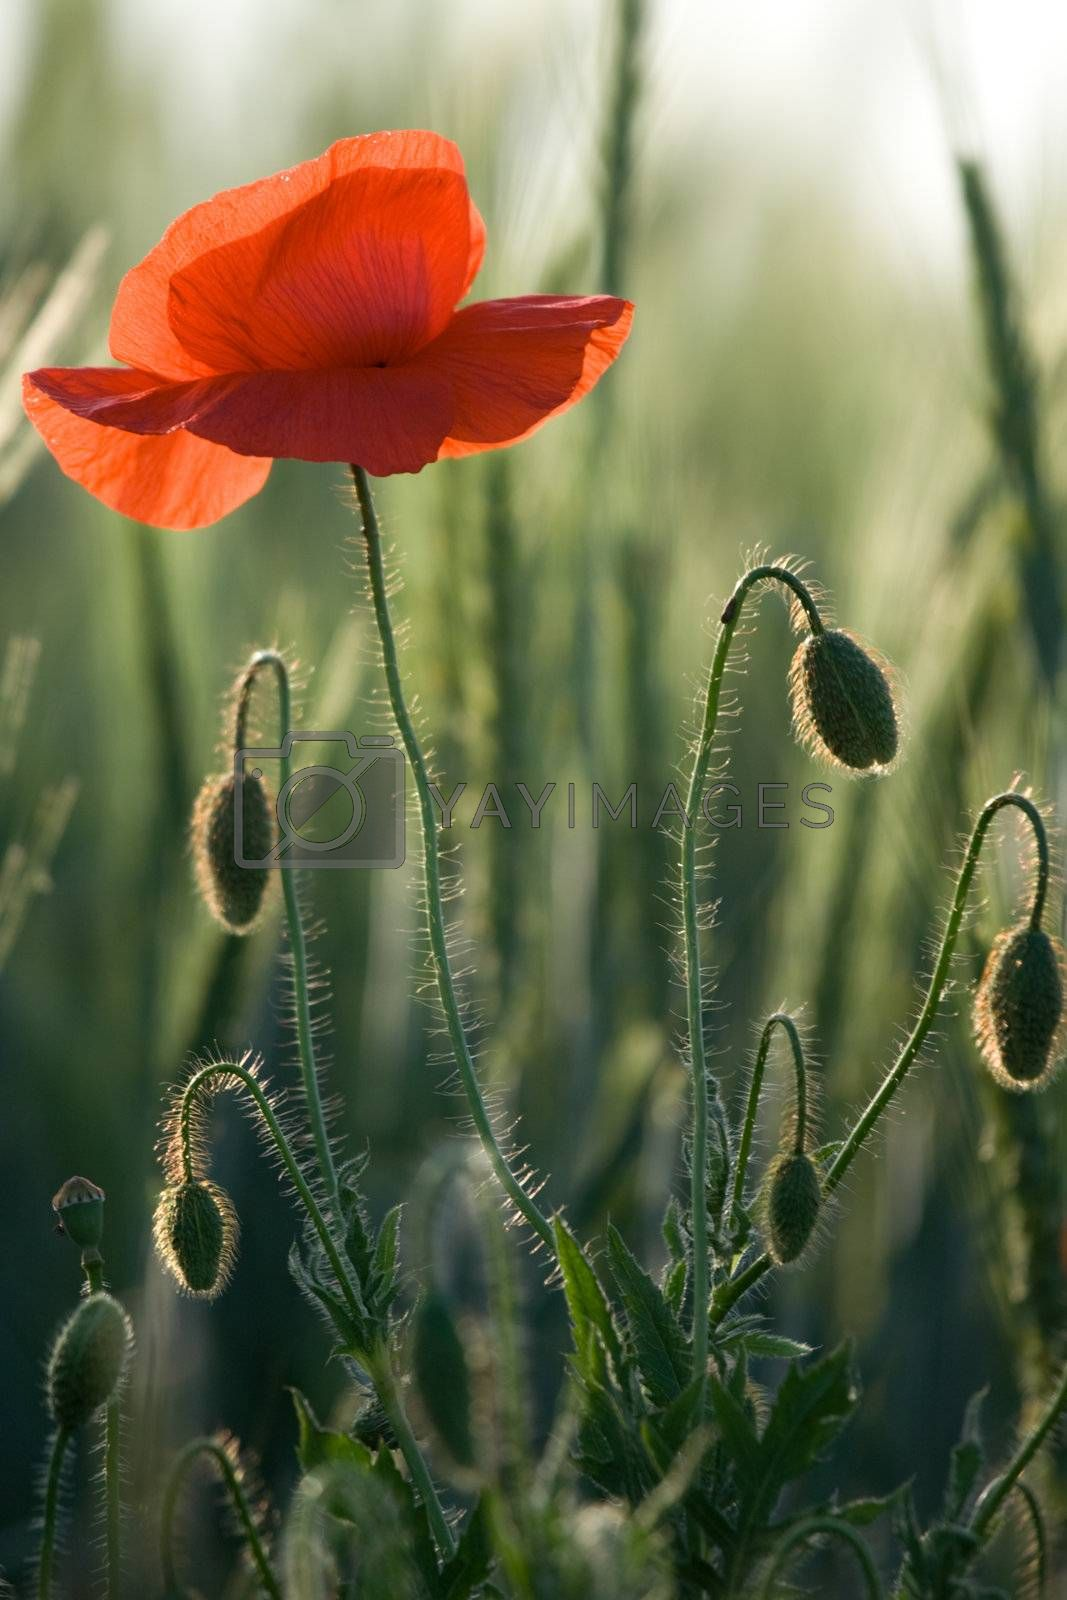 One red poppy and poppyheads into the young cereals